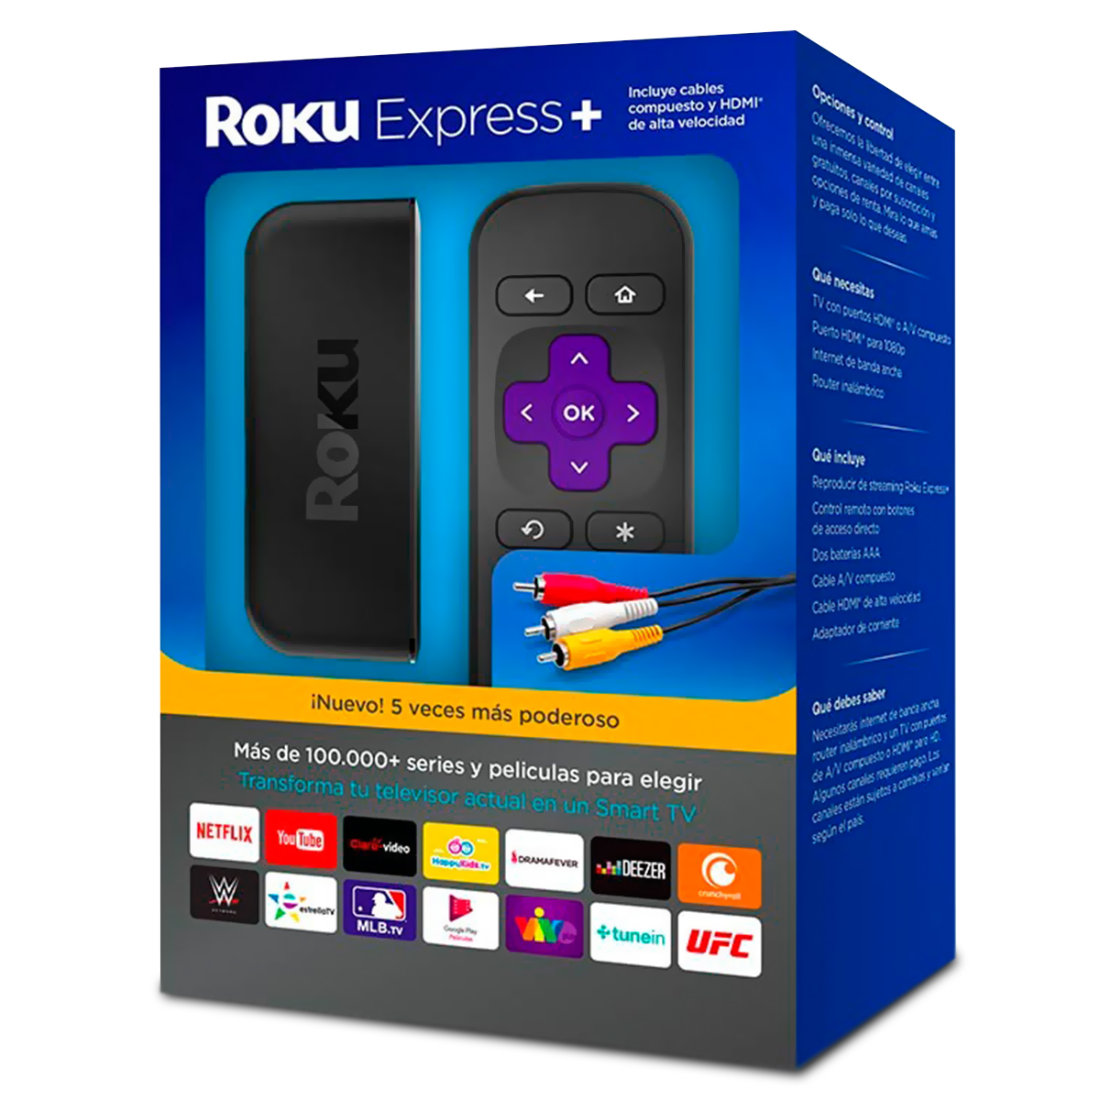 REPRODUCTOR DE STREAMING ROKU EXPRESS